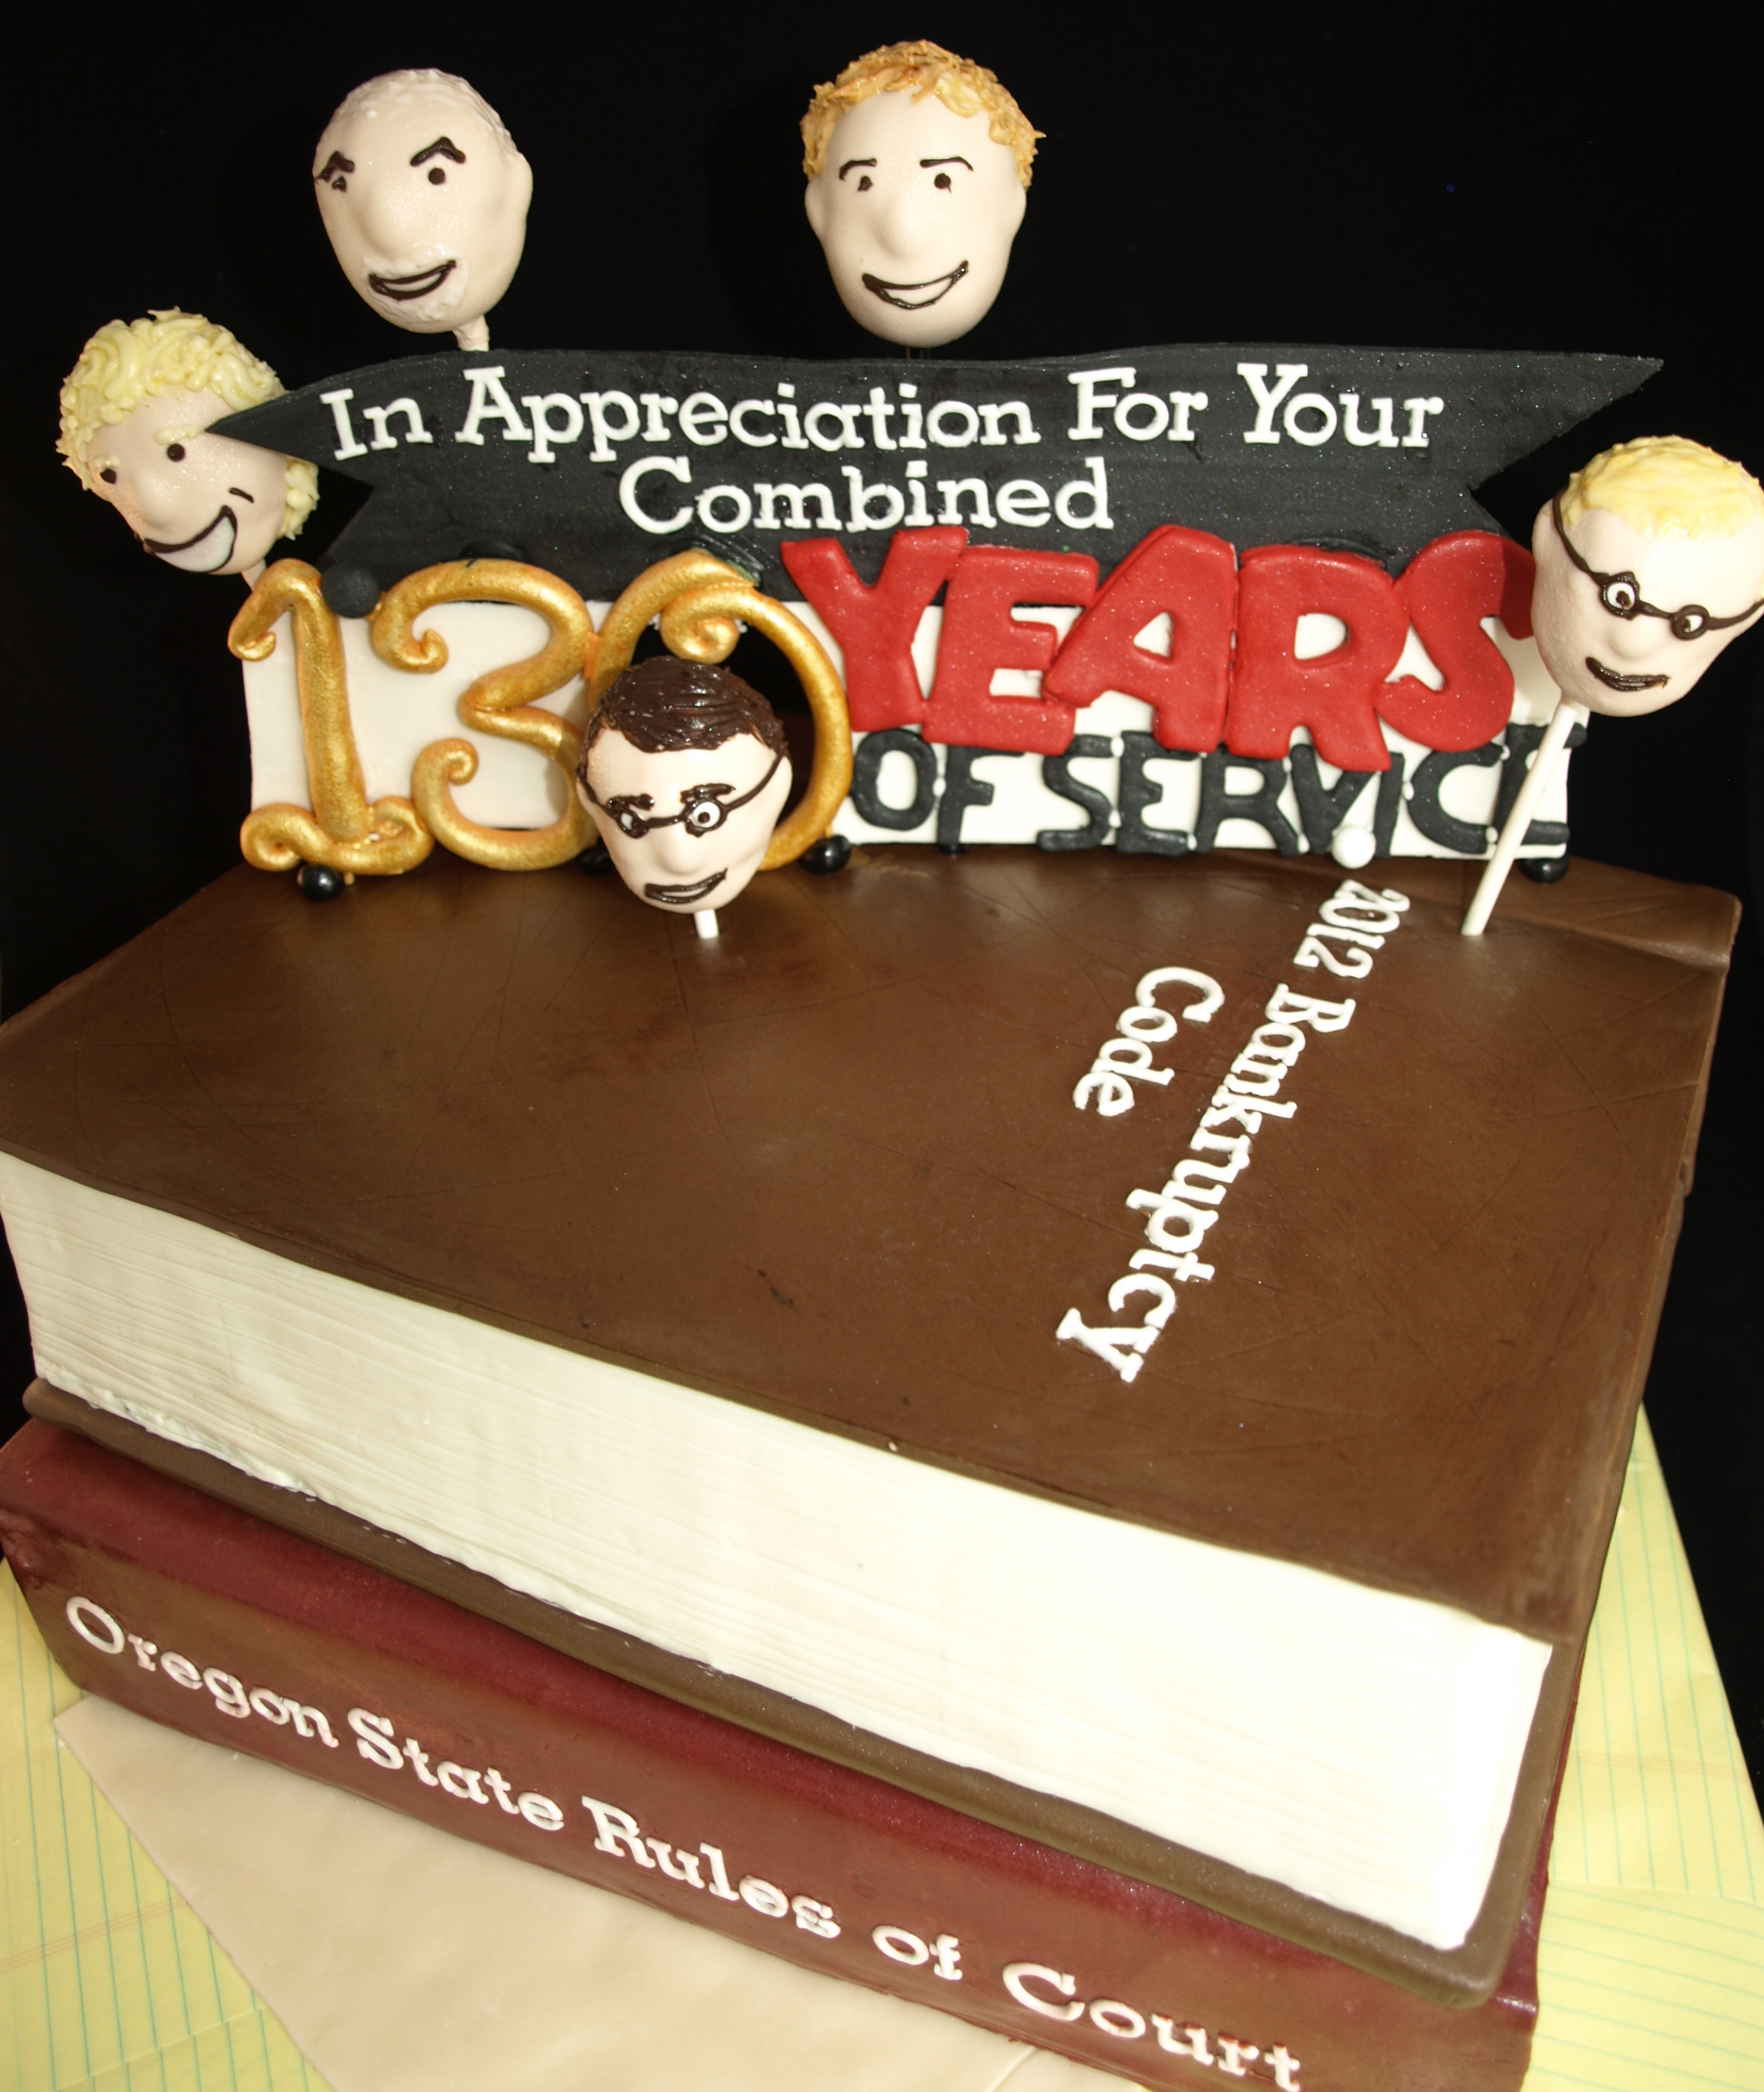 Lawyer Attorney book cake with cake pop caricatures heads